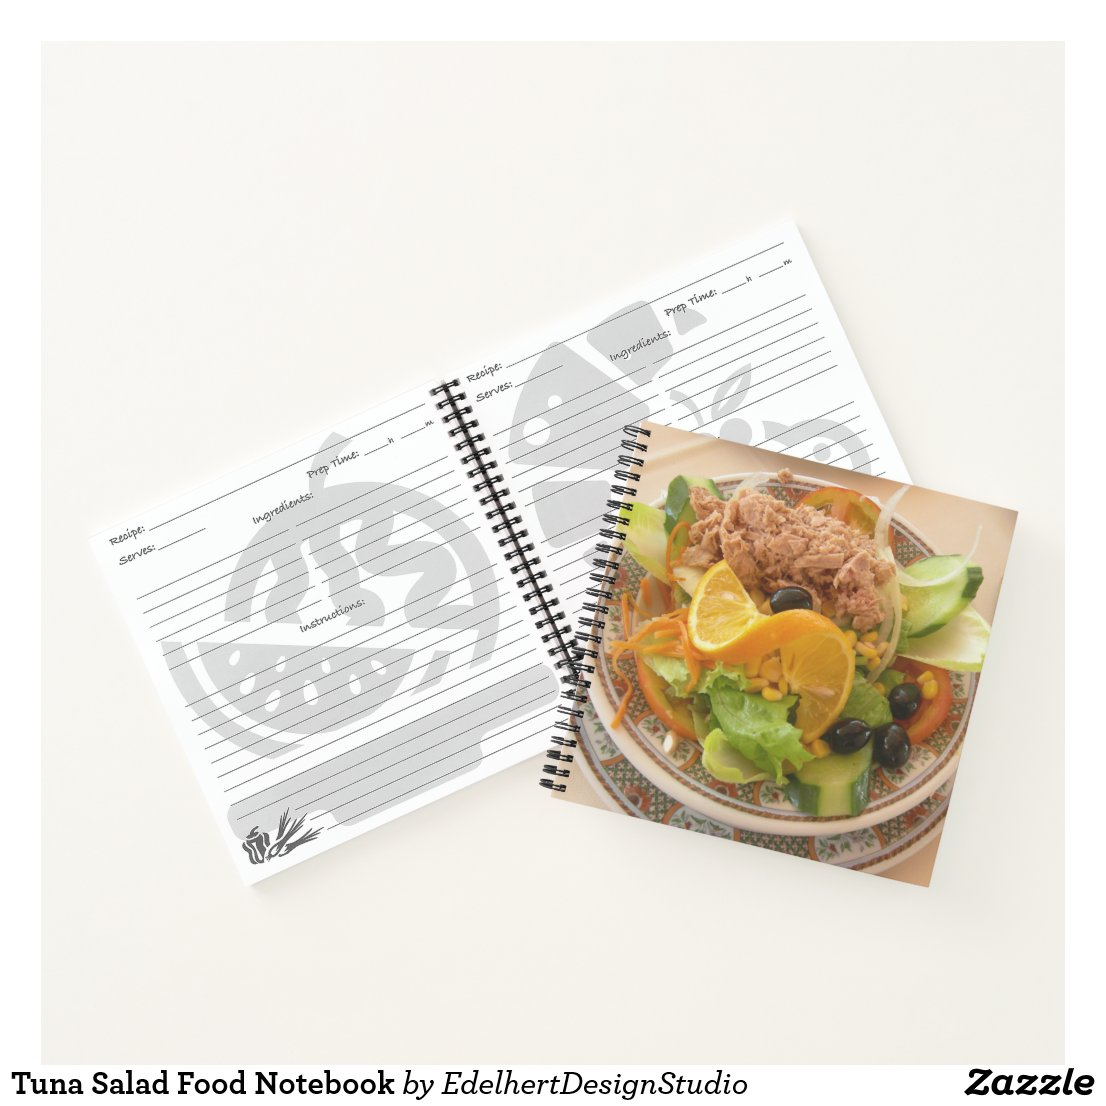 Tuna Salad Food Notebook